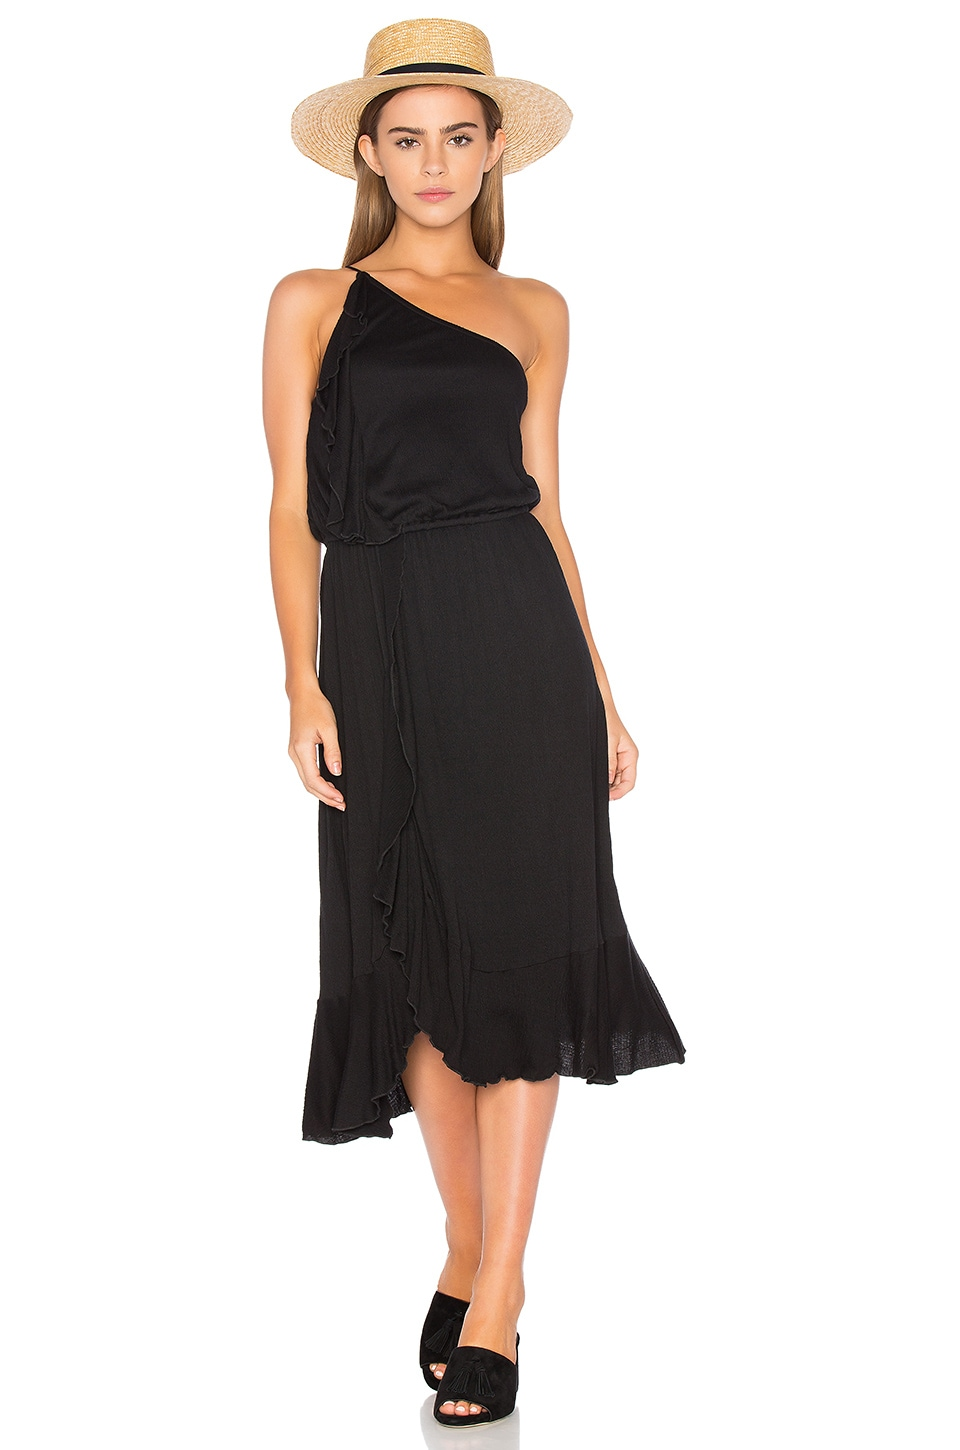 Ella Moss Gioannia Dress in Black